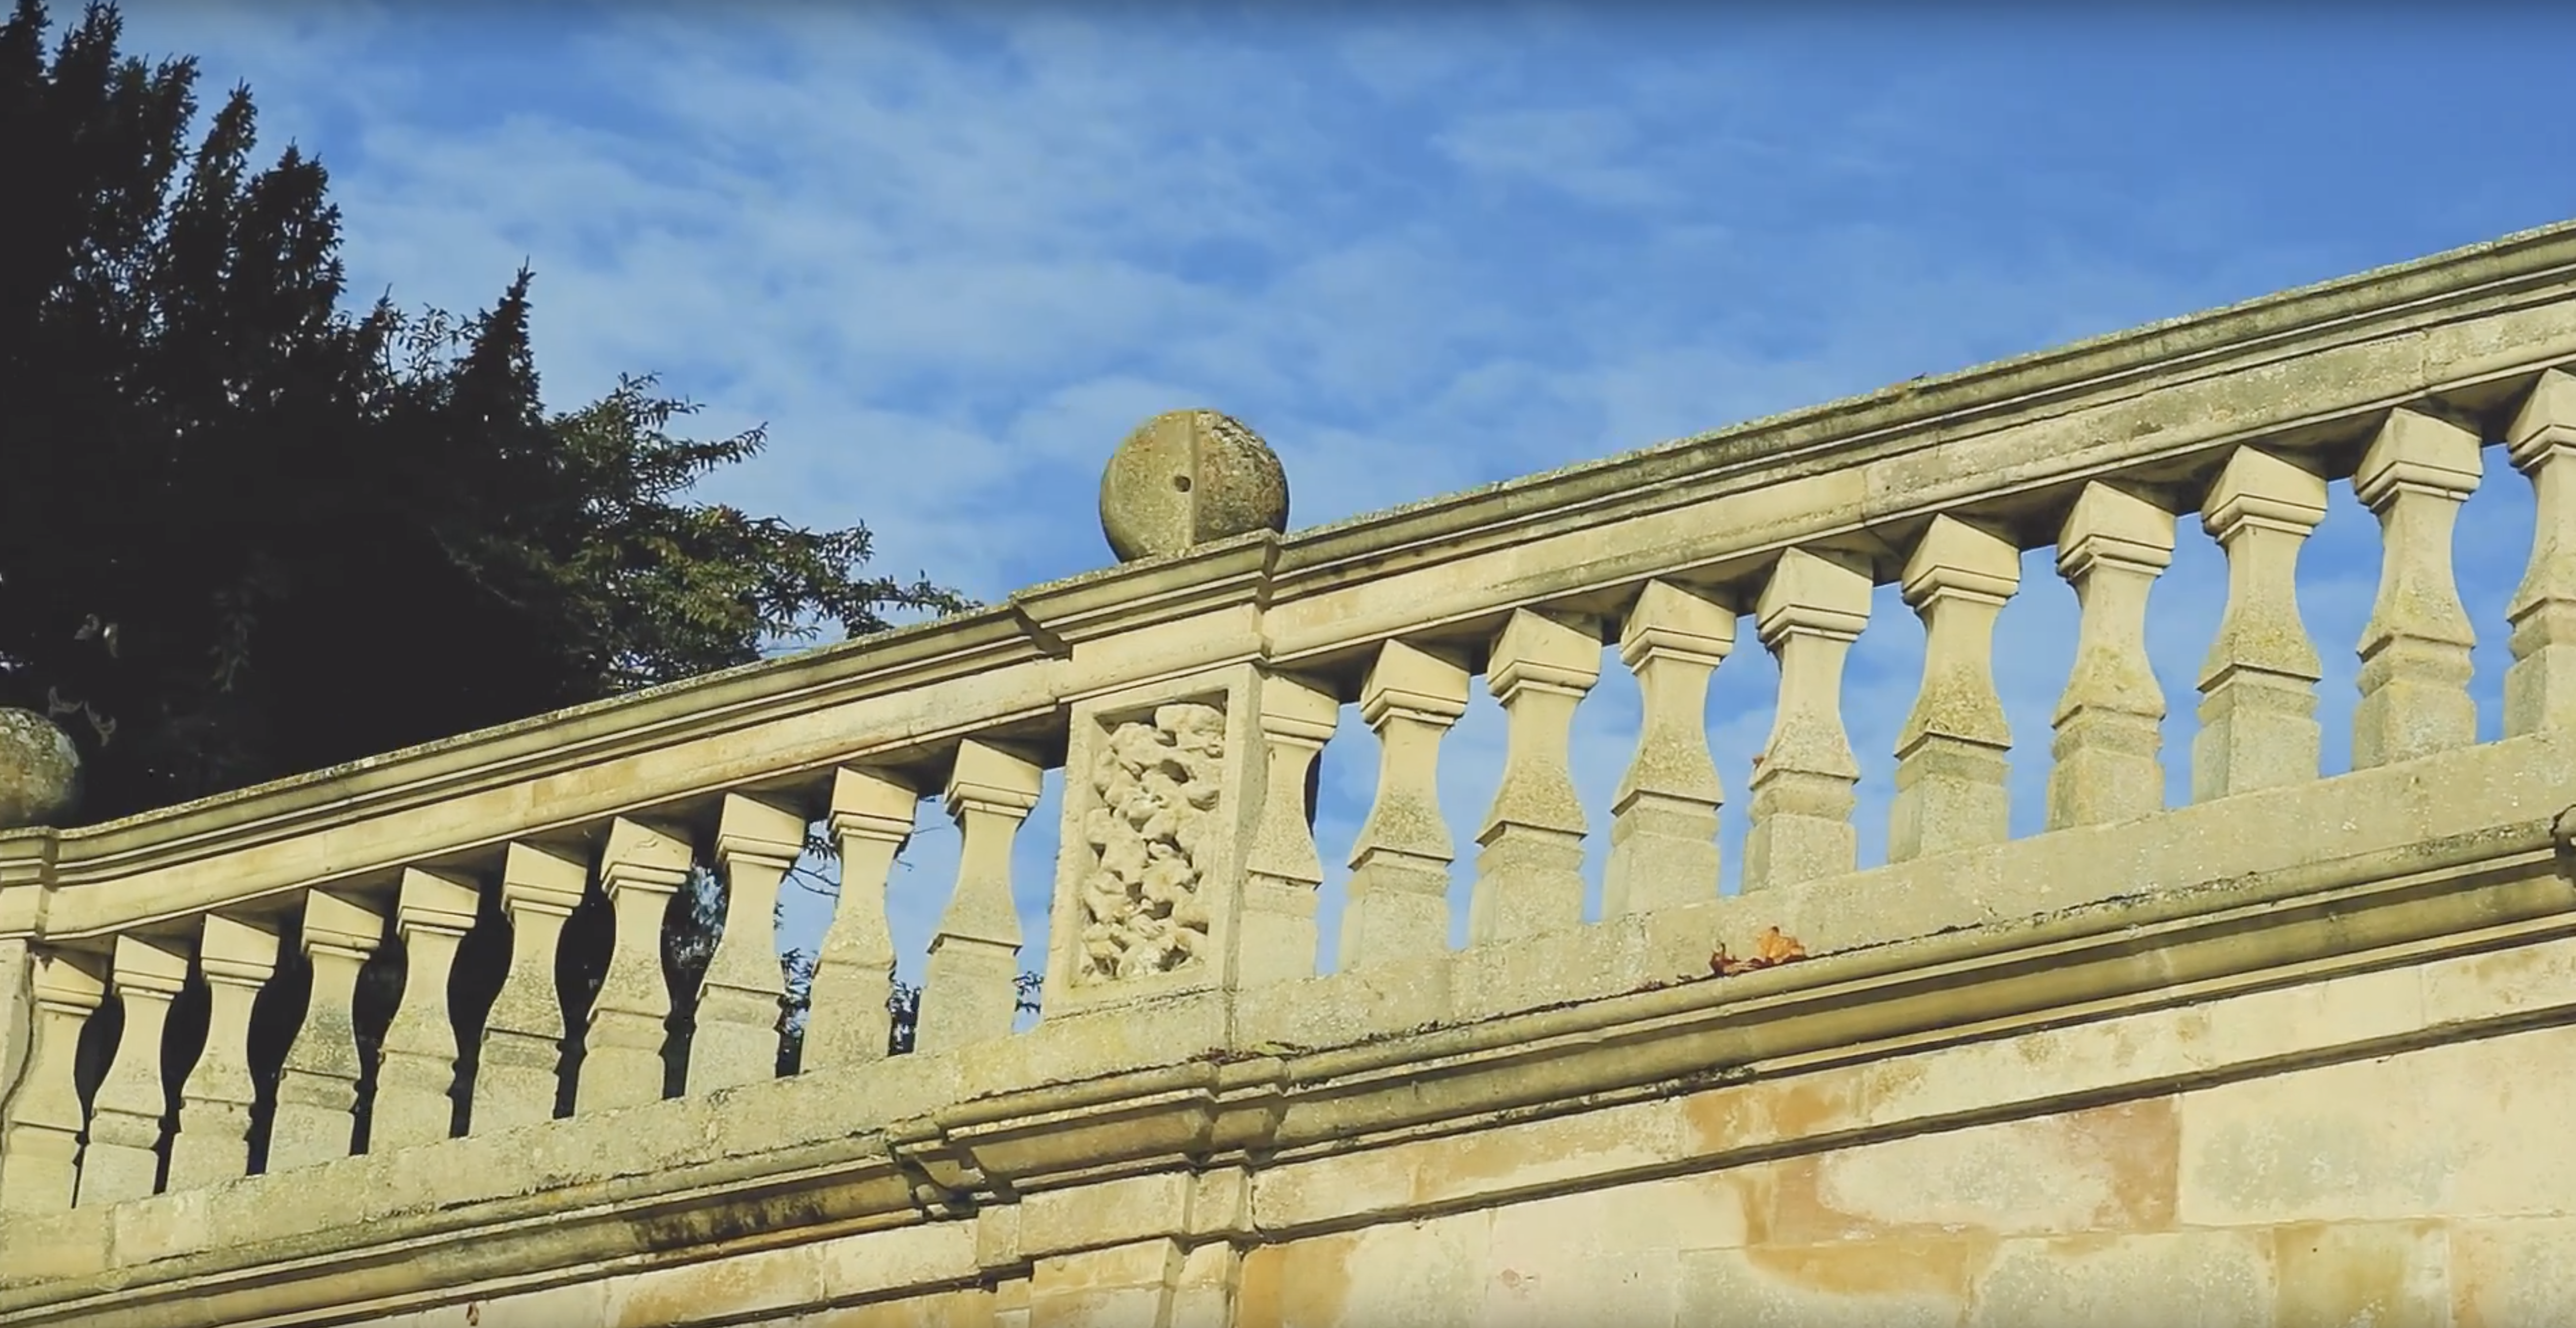 close up on clare college bridge and the missing stone piece